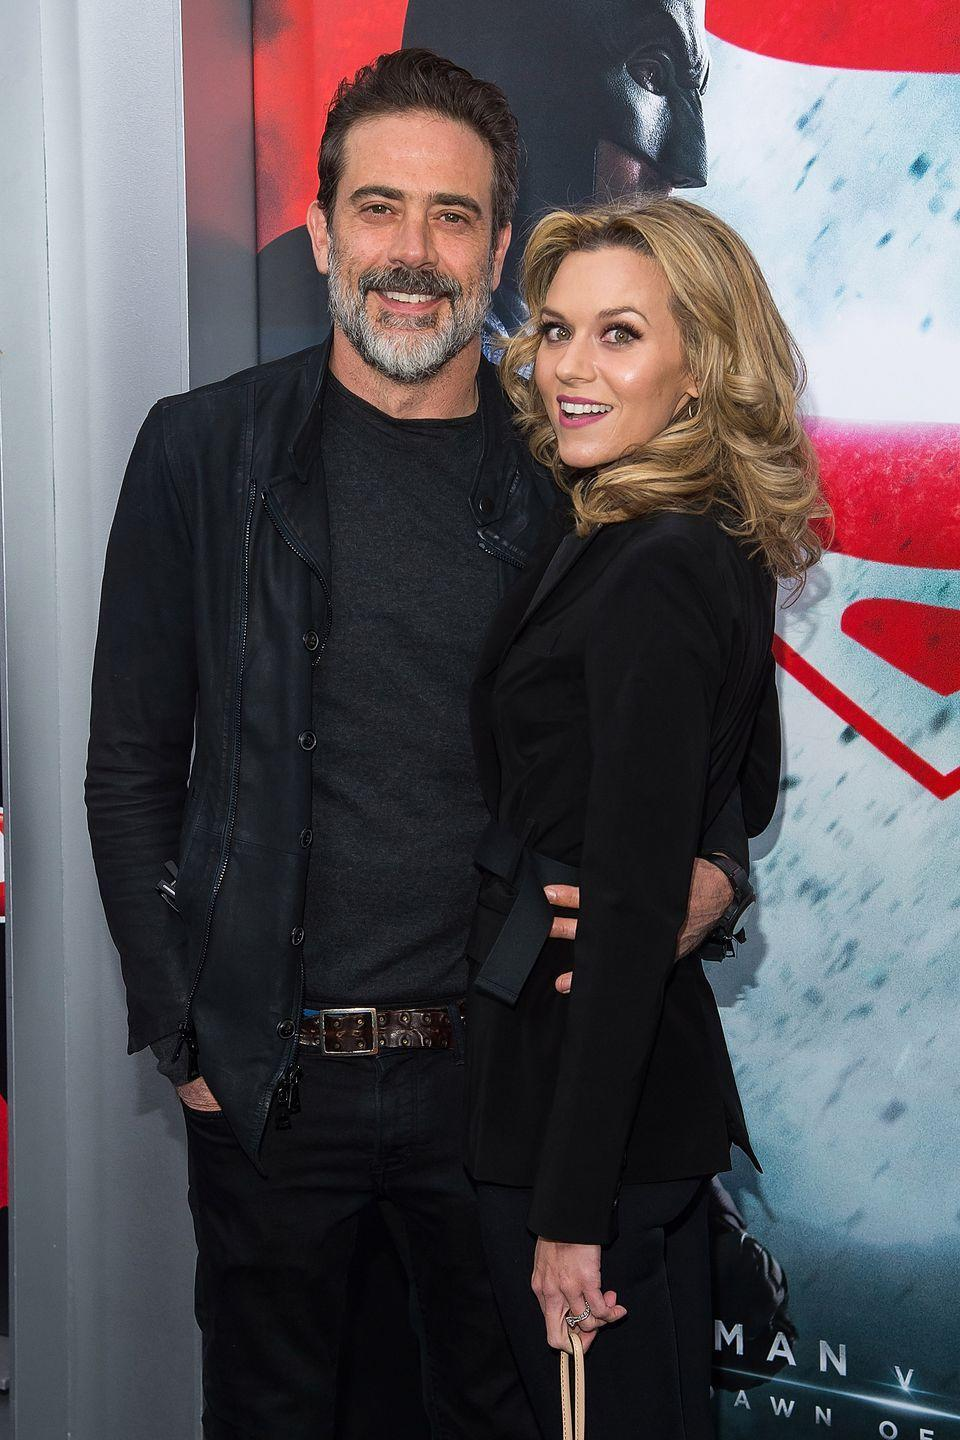 "<p>The <em>One Tree Hill </em>actress and <em>The Walking Dead</em>star began dating in 2009 <a href=""http://www.eonline.com/news/882768/jeffrey-dean-morgan-and-hilarie-burton-inside-the-hollywood-pair-s-private-relationship%22%20%5Cl%20%22photo-848805"" rel=""nofollow noopener"" target=""_blank"" data-ylk=""slk:after being set up"" class=""link rapid-noclick-resp"">after being set up</a> by Morgan's <em>Supernatural</em> co-star, Jensen Ackles. The couple welcomed sone Gus in 2010, and were married in 2014. They recently welcomed a daughter, George Virginia, in 2018. </p>"